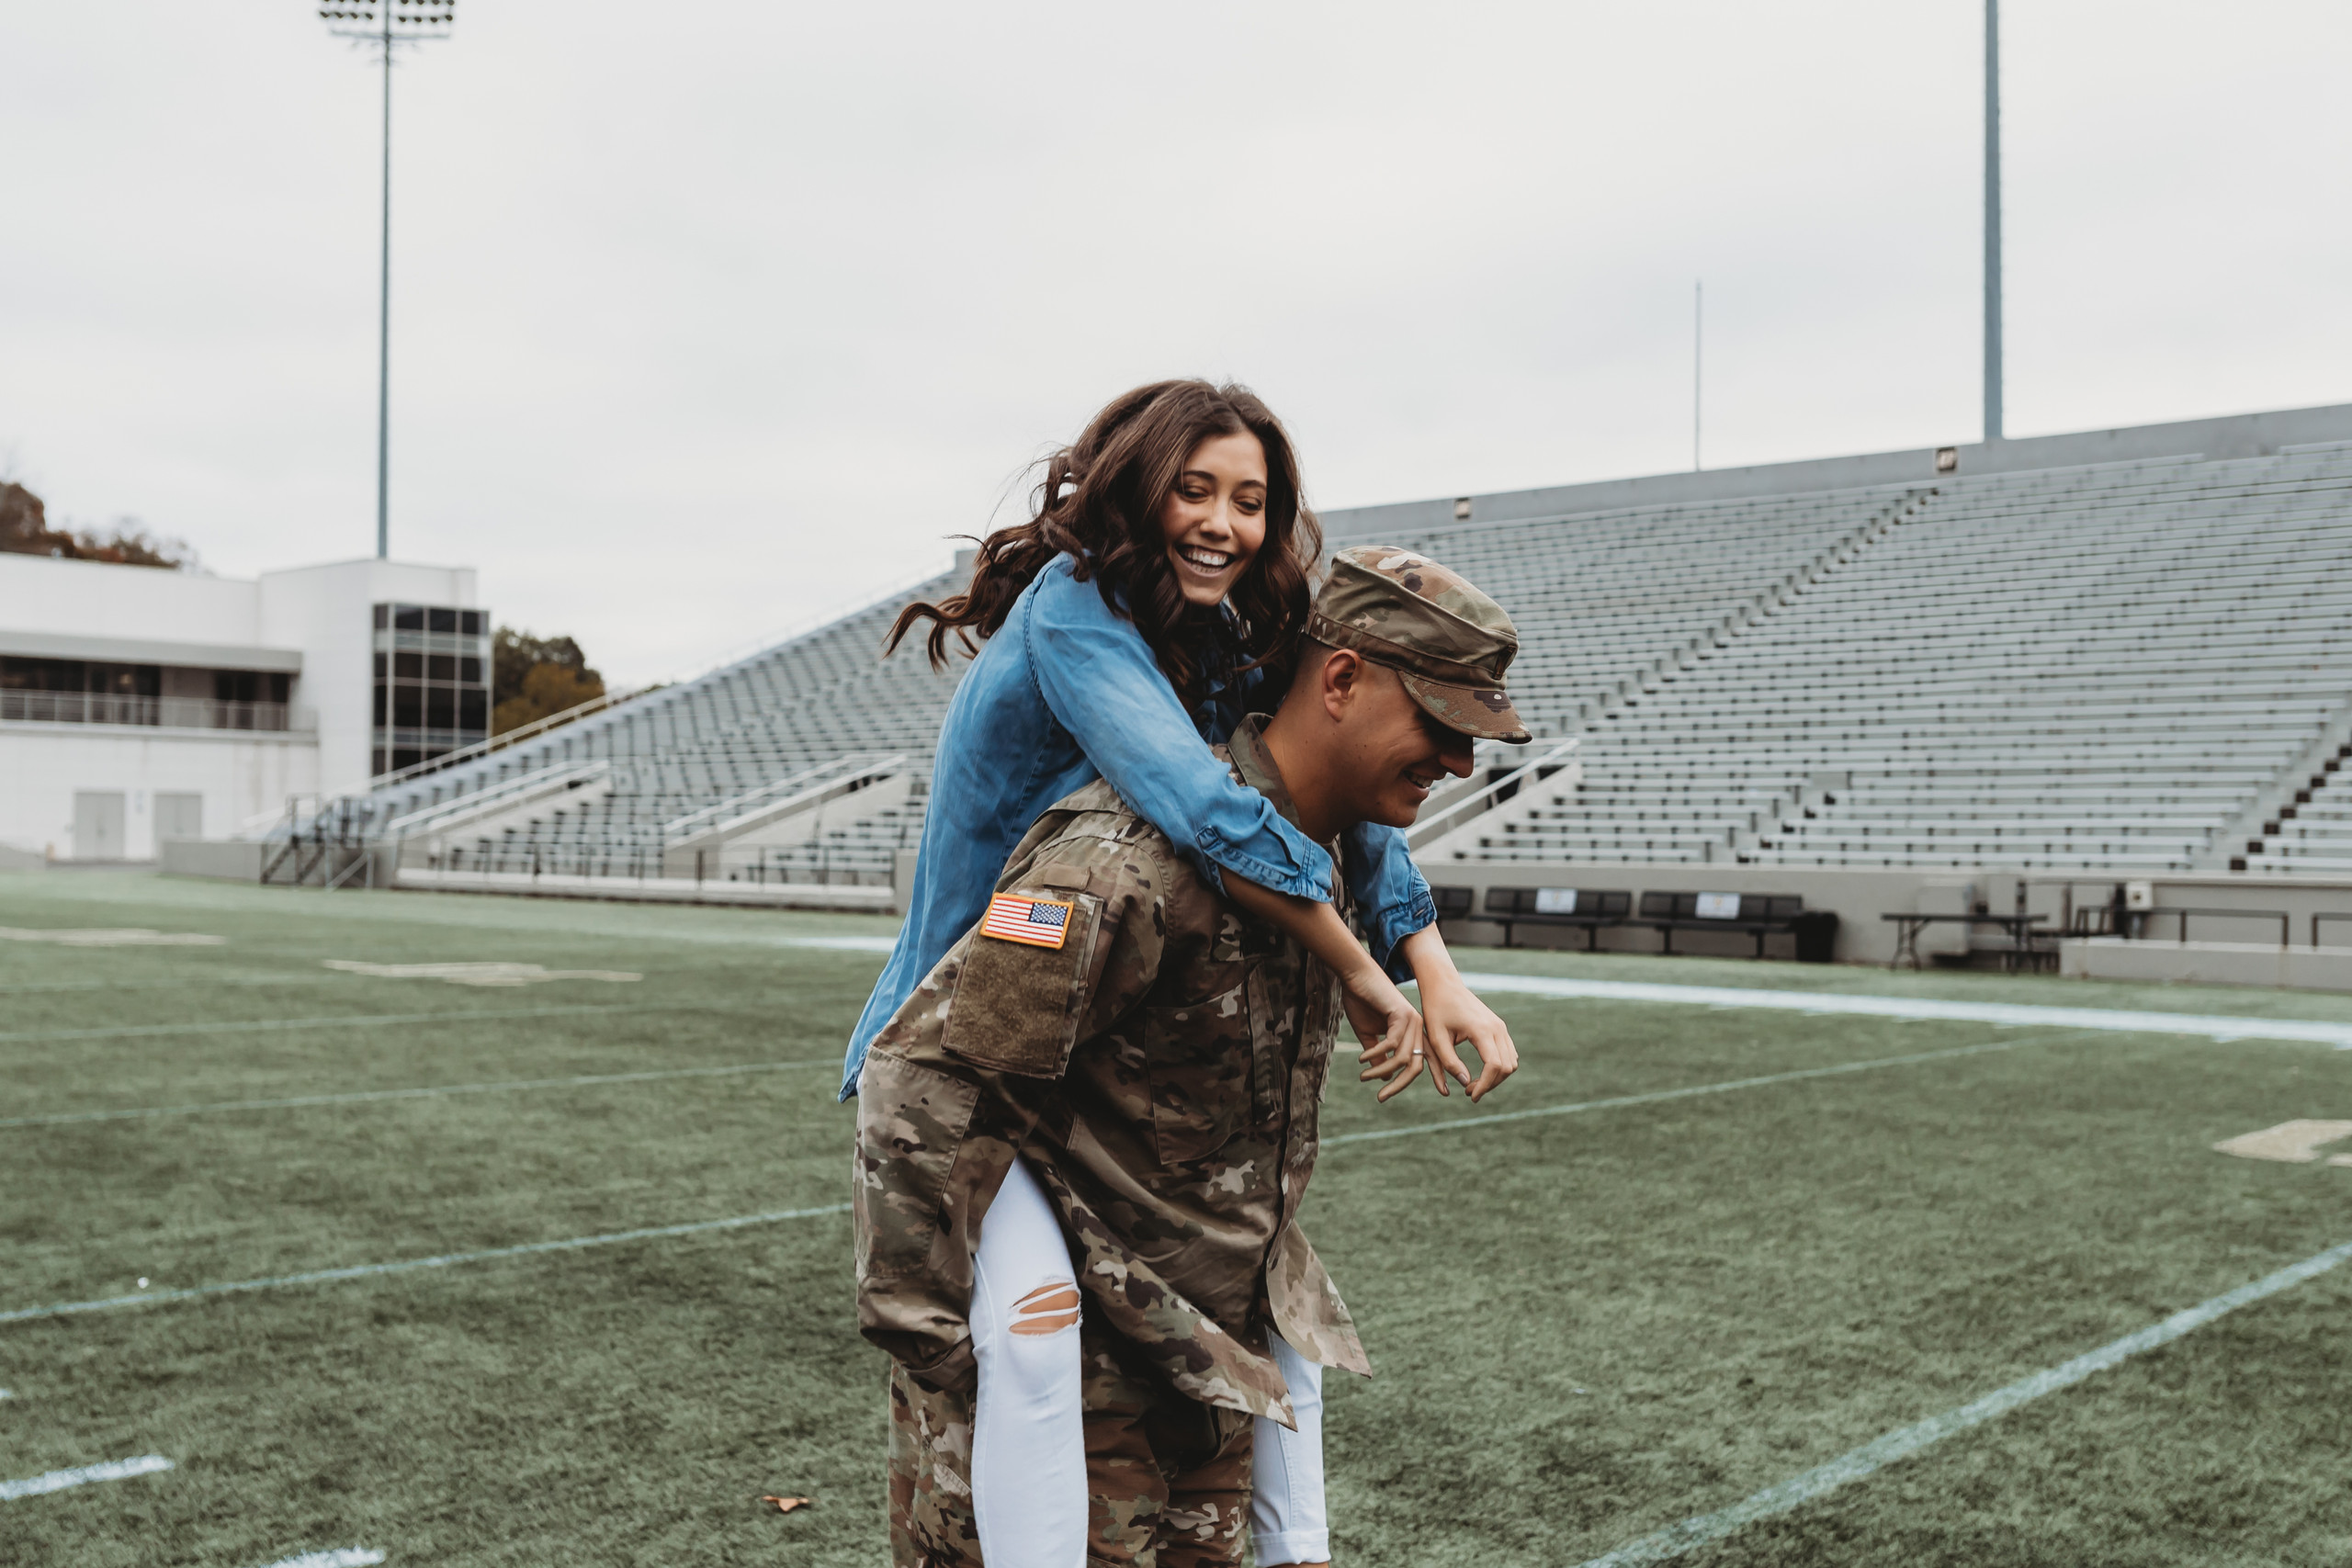 army lacrosse engagement session, army engagement session, west point engagement photos, michie stadium engagement photos, michie stadium engagement, trophy point engagement photos, BEAR MOUNTAIN INN WEDDING //  WEST POINT WEDDING PHOTOGRAPHER  //  WEST POINT WEDDING  //  WEST POINT, NY WEDDING PHOTOGRAPHER  //  WEST POINT ENGAGEMENT PHOTOGRAPHER  //  WEST POINT PHOTOGRAPHER west point engagement photographer, usma engagement photographer, usma engagement session, usma engagement, west point engagement session